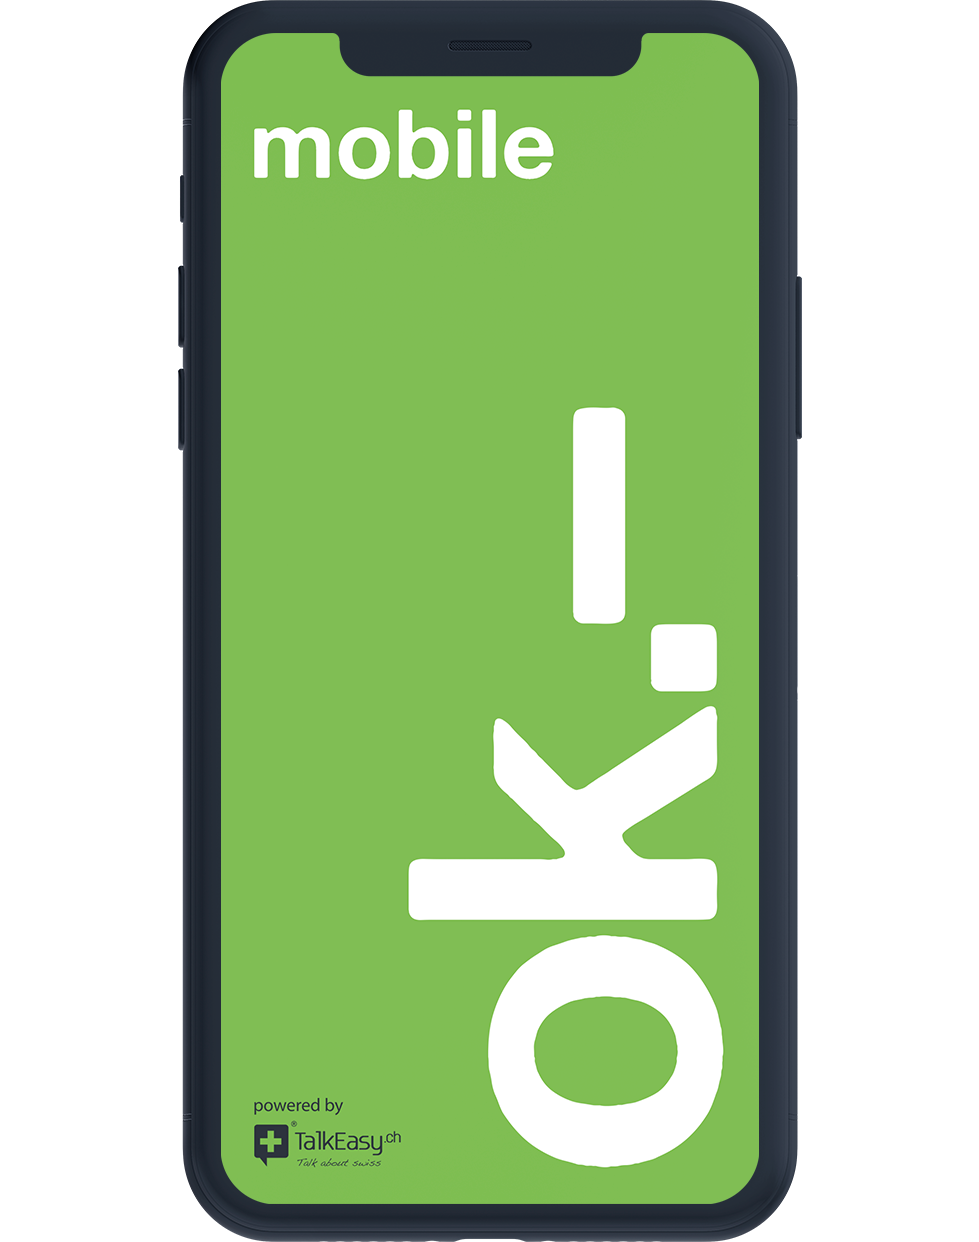 Registrieren bei ok.– mobile? It's ok.–